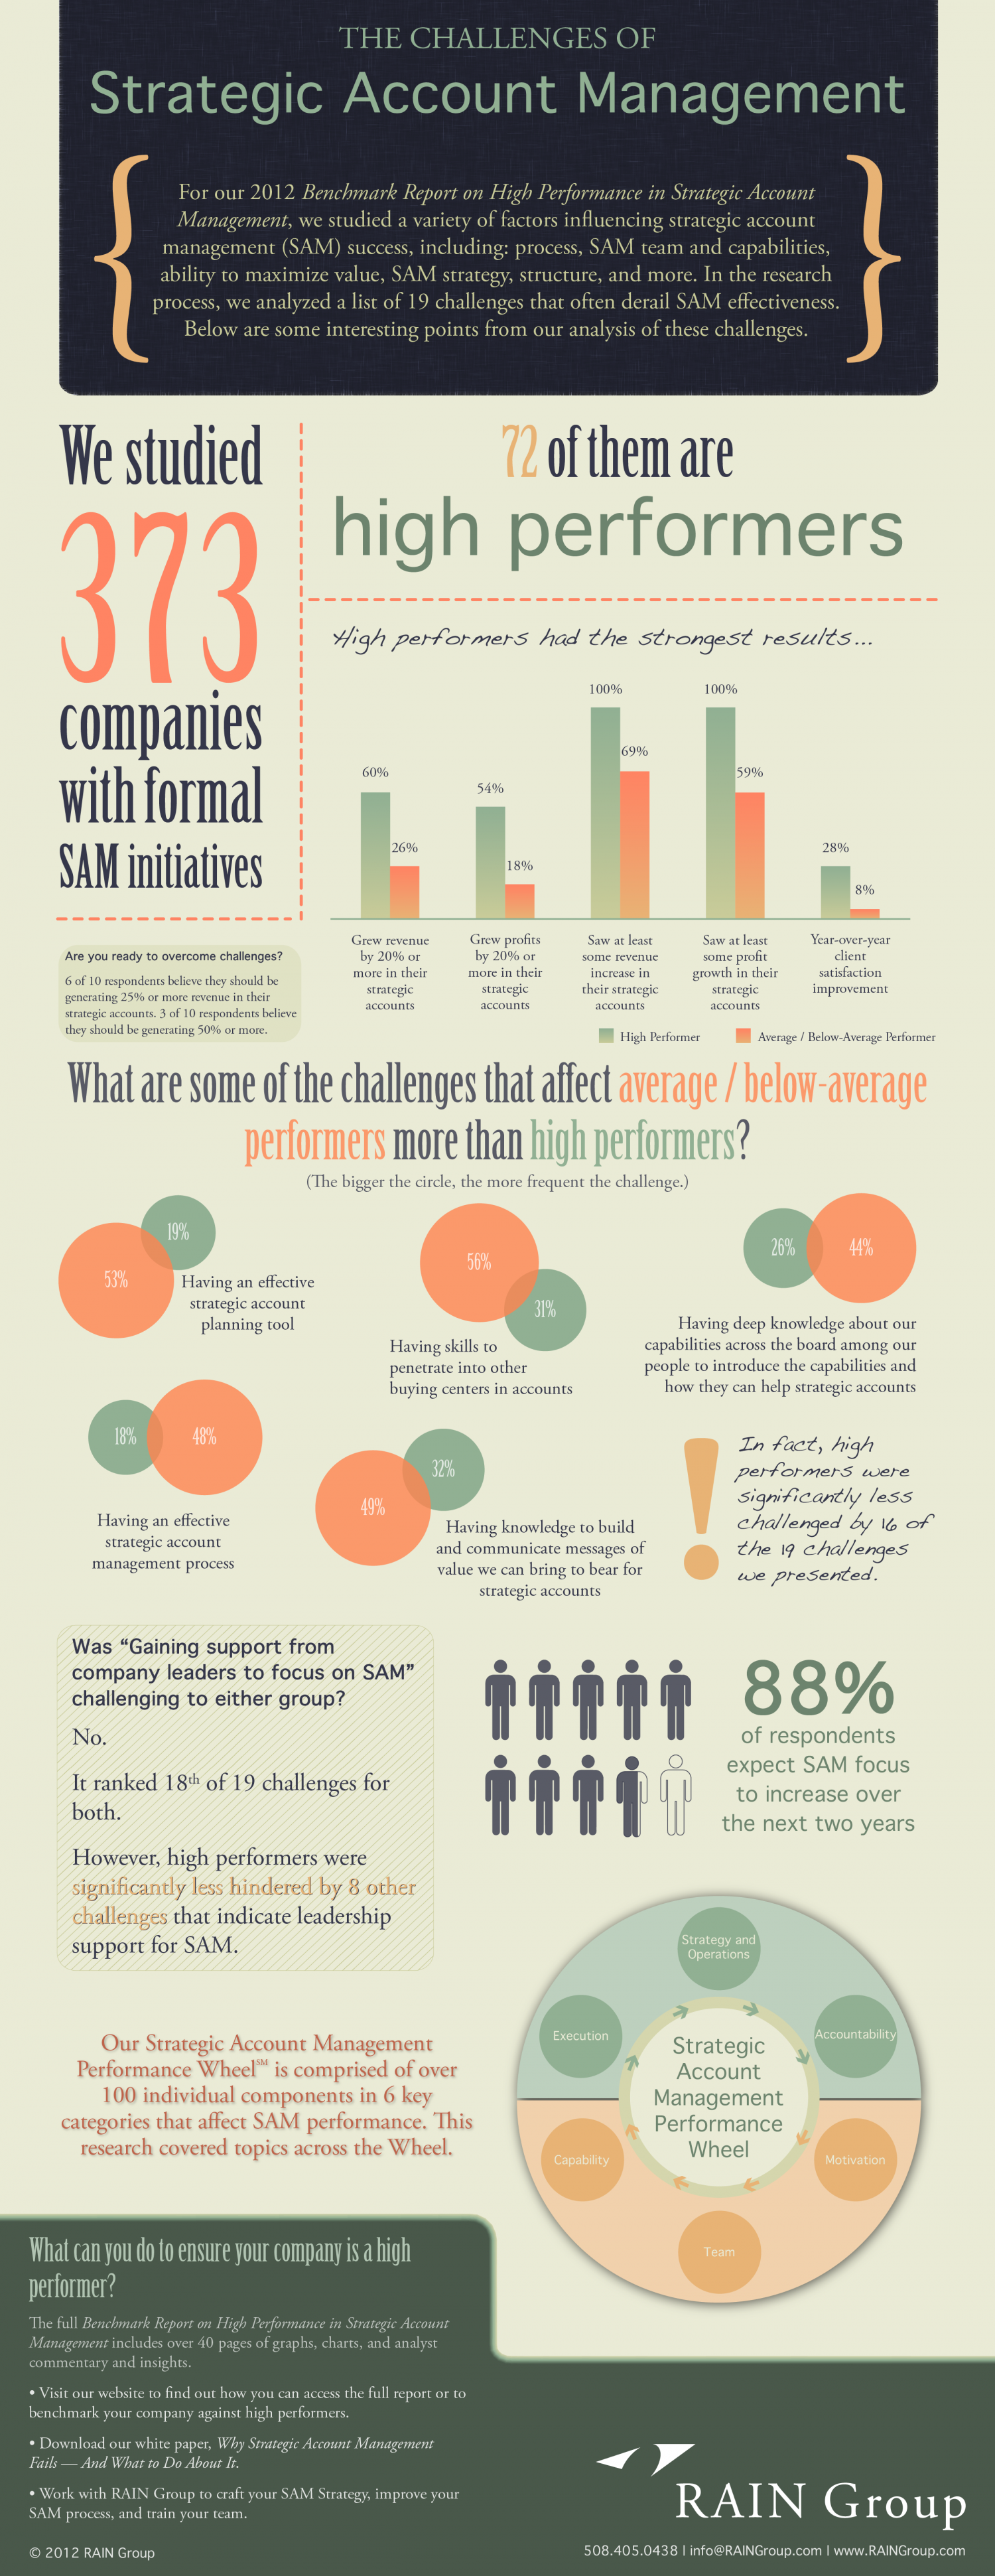 The Challenges of Strategic Account Management Infographic